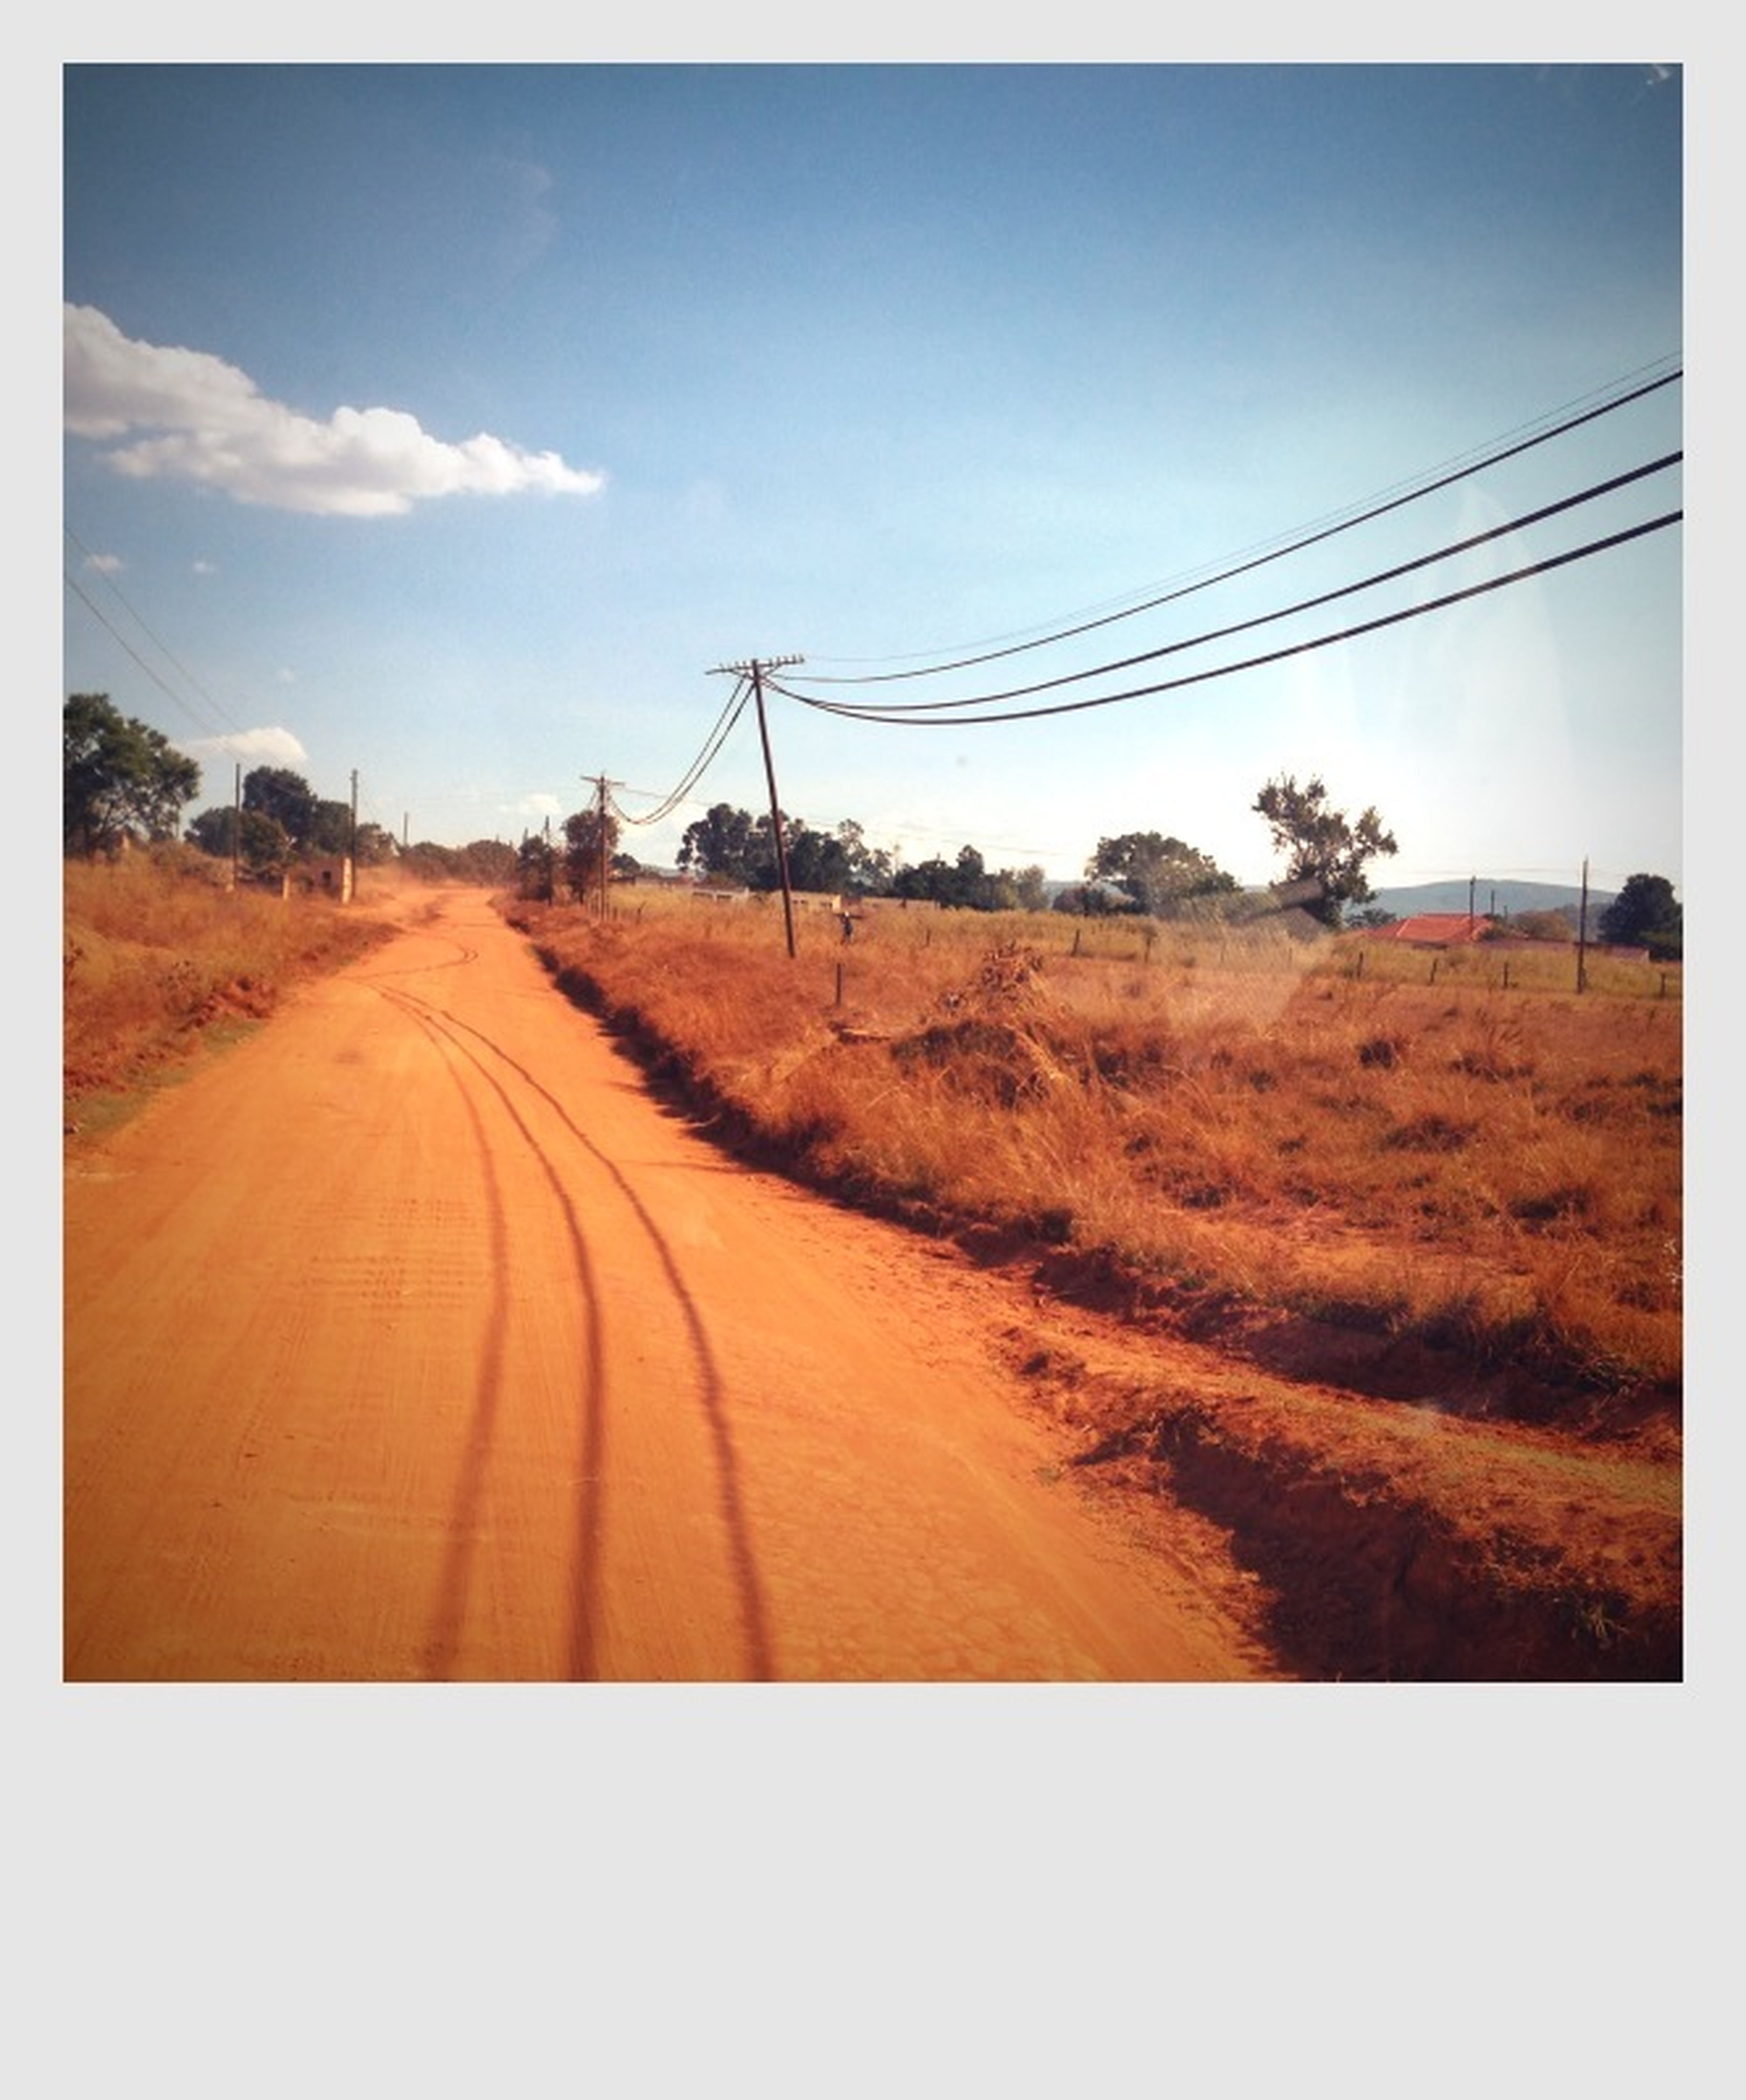 the way forward, diminishing perspective, landscape, sky, vanishing point, transportation, road, tranquil scene, dirt road, field, tranquility, country road, rural scene, transfer print, electricity pylon, nature, power line, long, cloud, auto post production filter